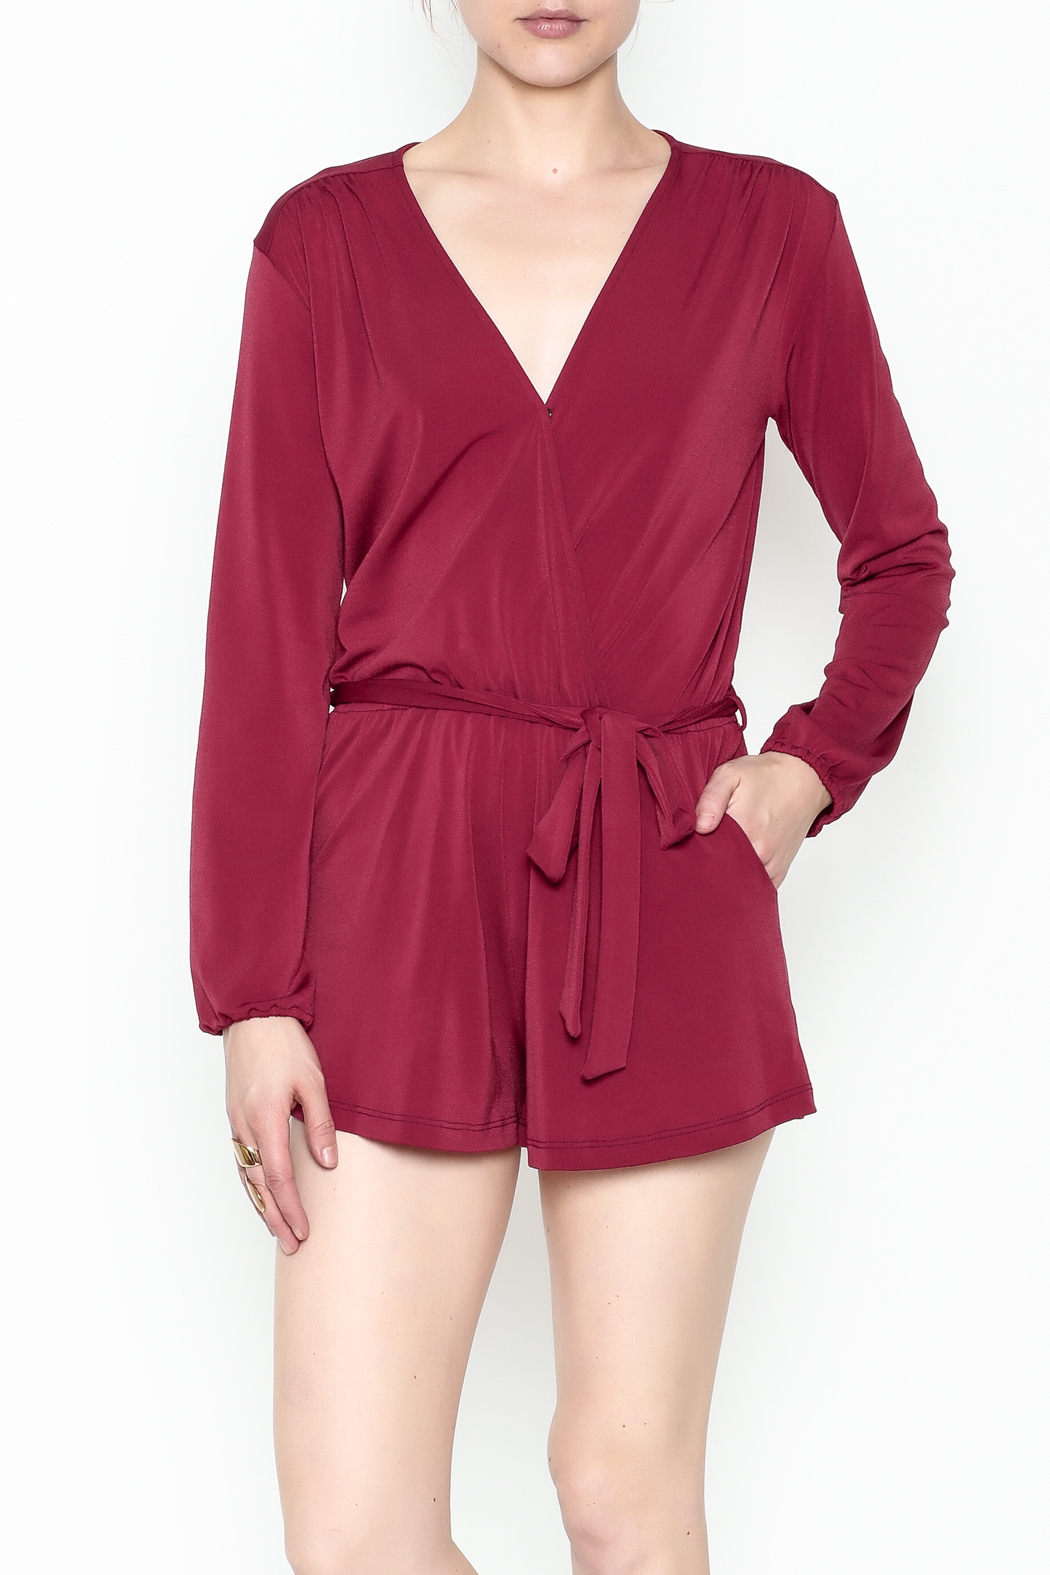 L'atiste Jasmine Red Romper - Front Cropped Image